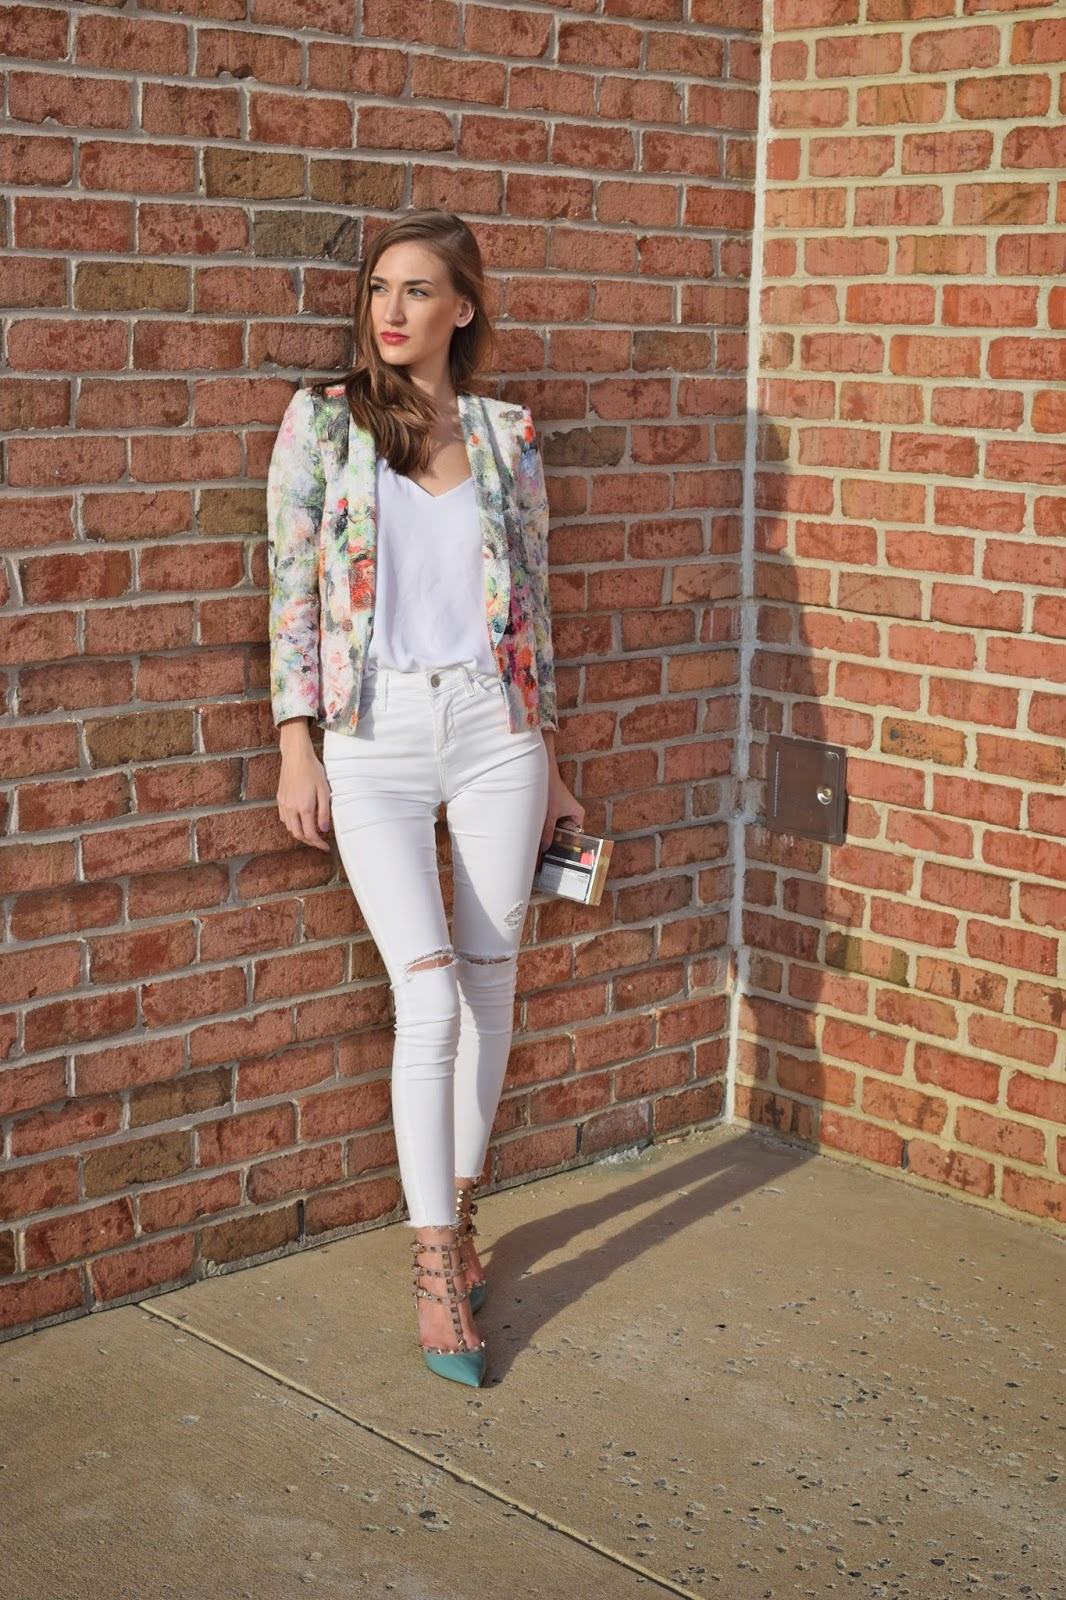 Wearing Persun Mall Embossed Floral Blazer, Topshop Moto Leigh Distressed Skinny Jeans, Express Barcelona Cami, Blue Valentino Rockstuds